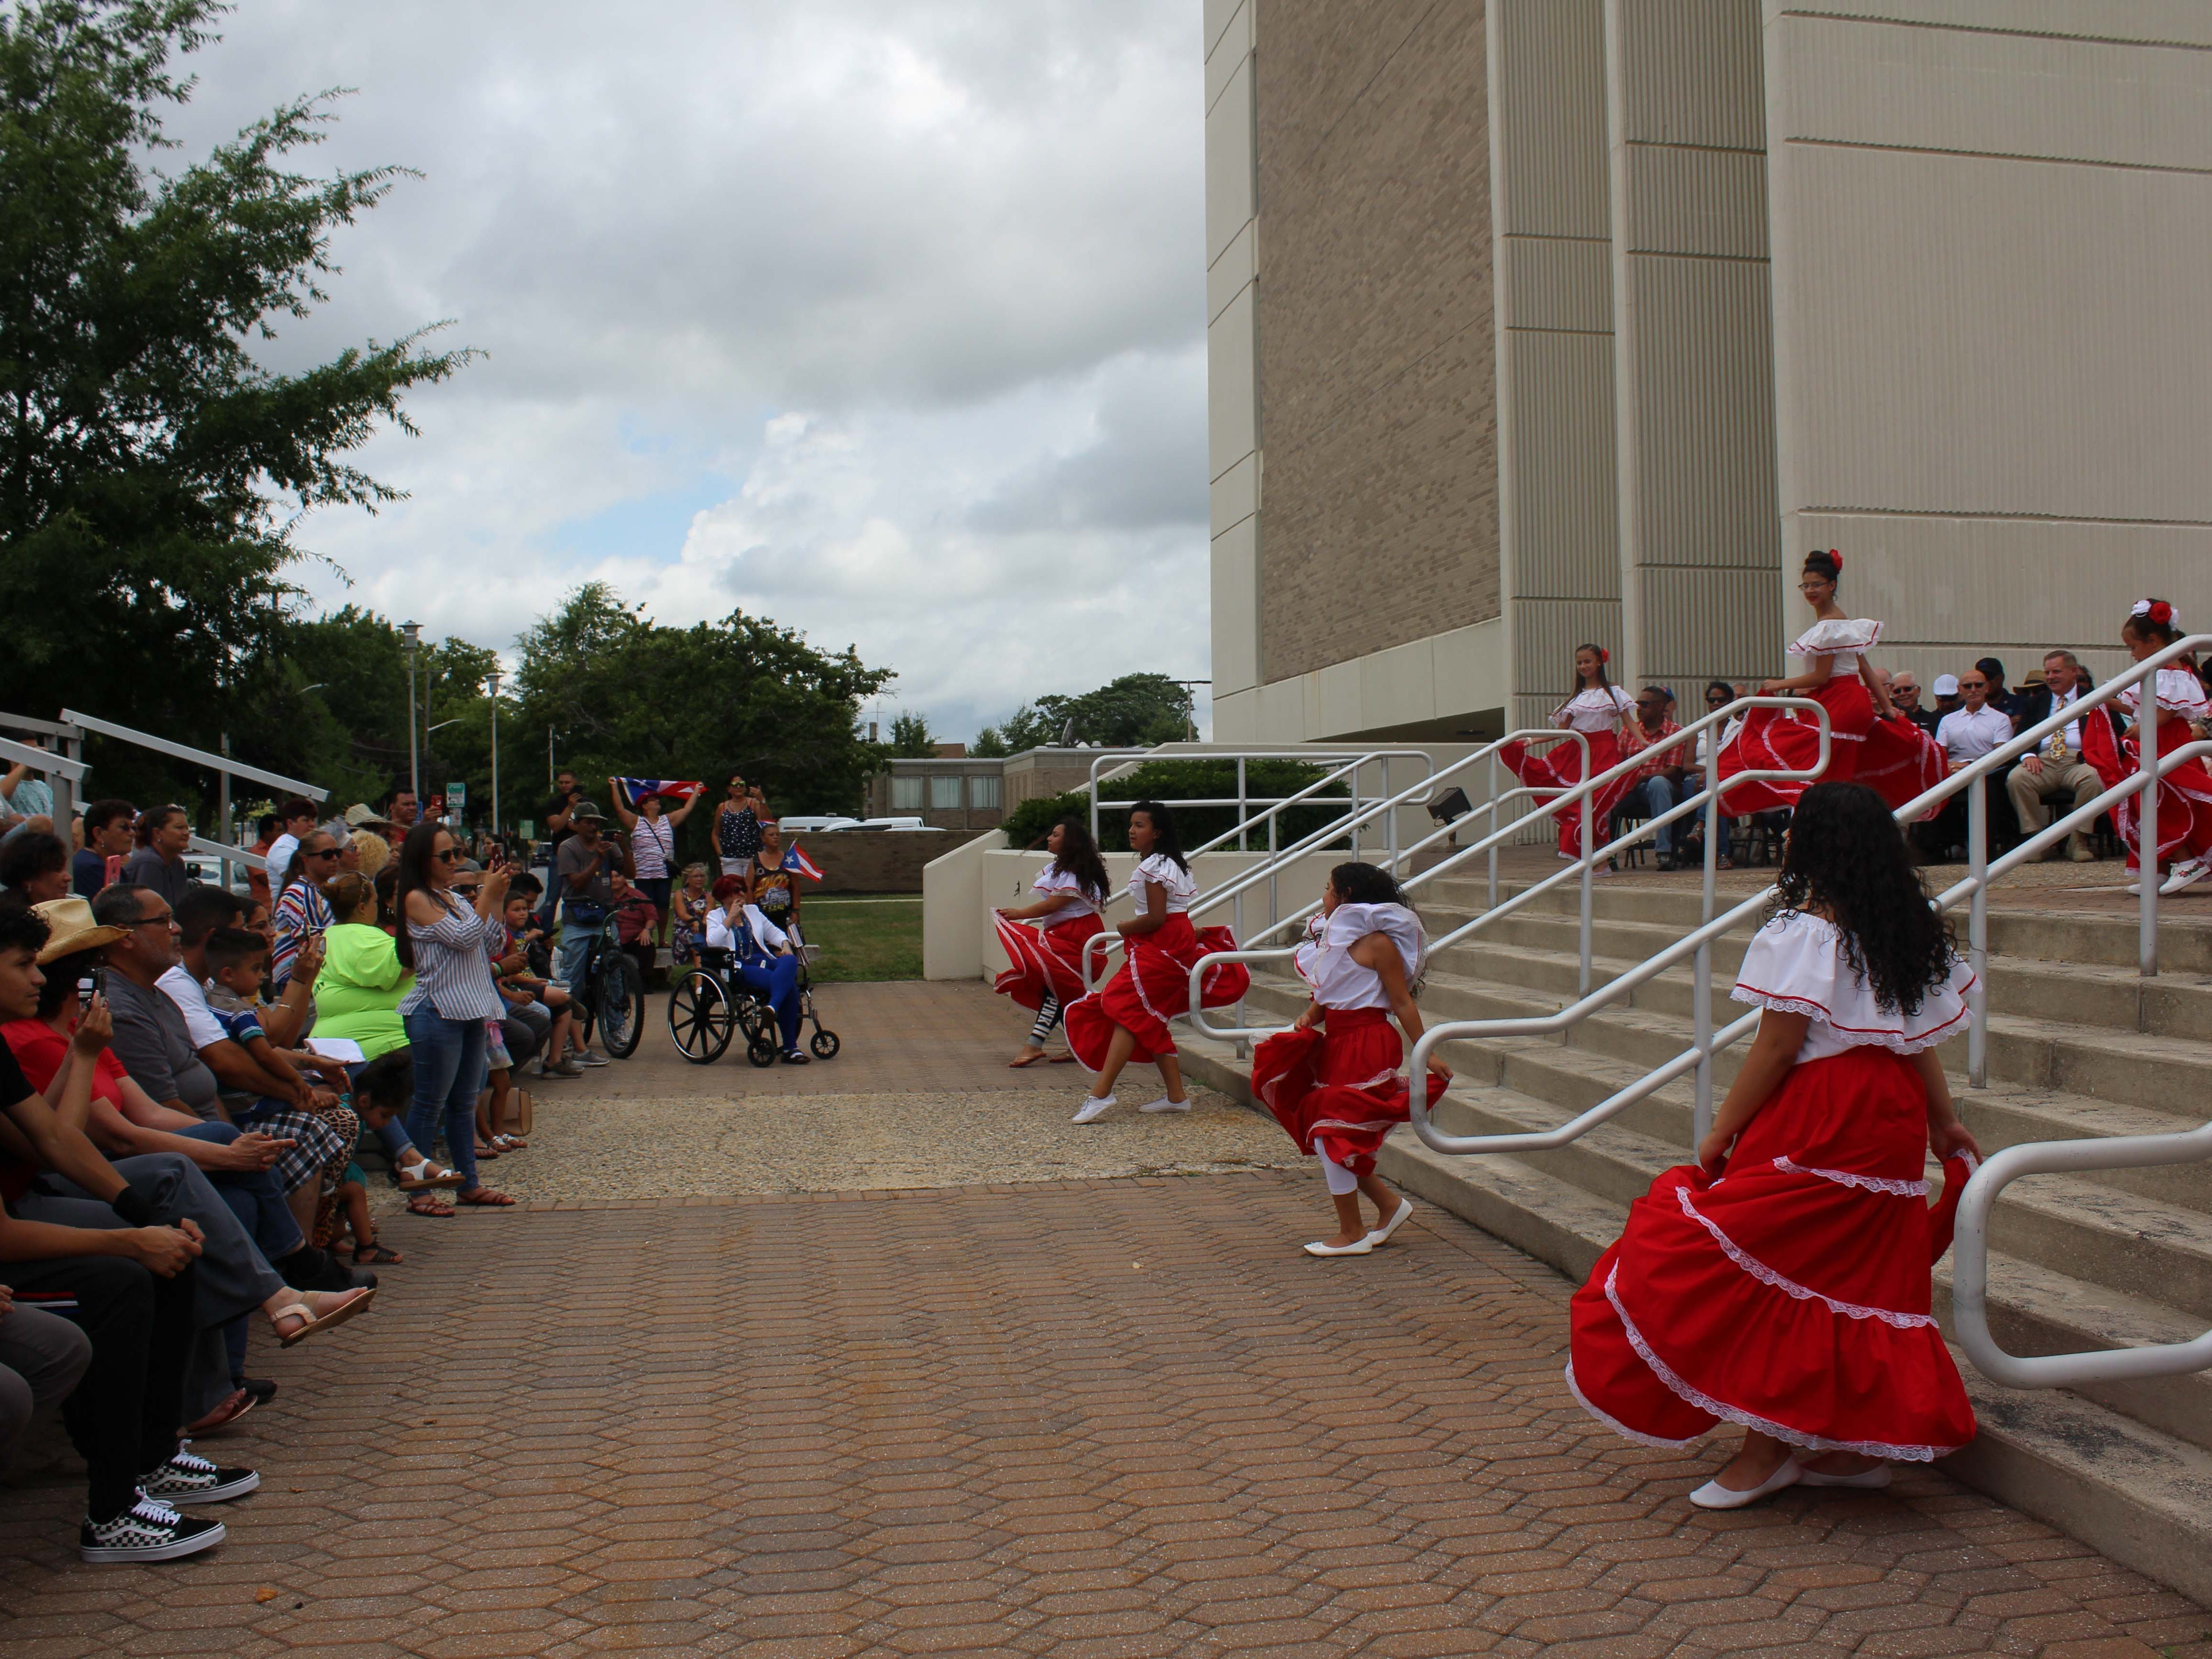 Some of the dancers and performances during the flag-raising ceremony for the Puerto Rican Festival at Vineland City Hall on Sunday, July 22, 2018.